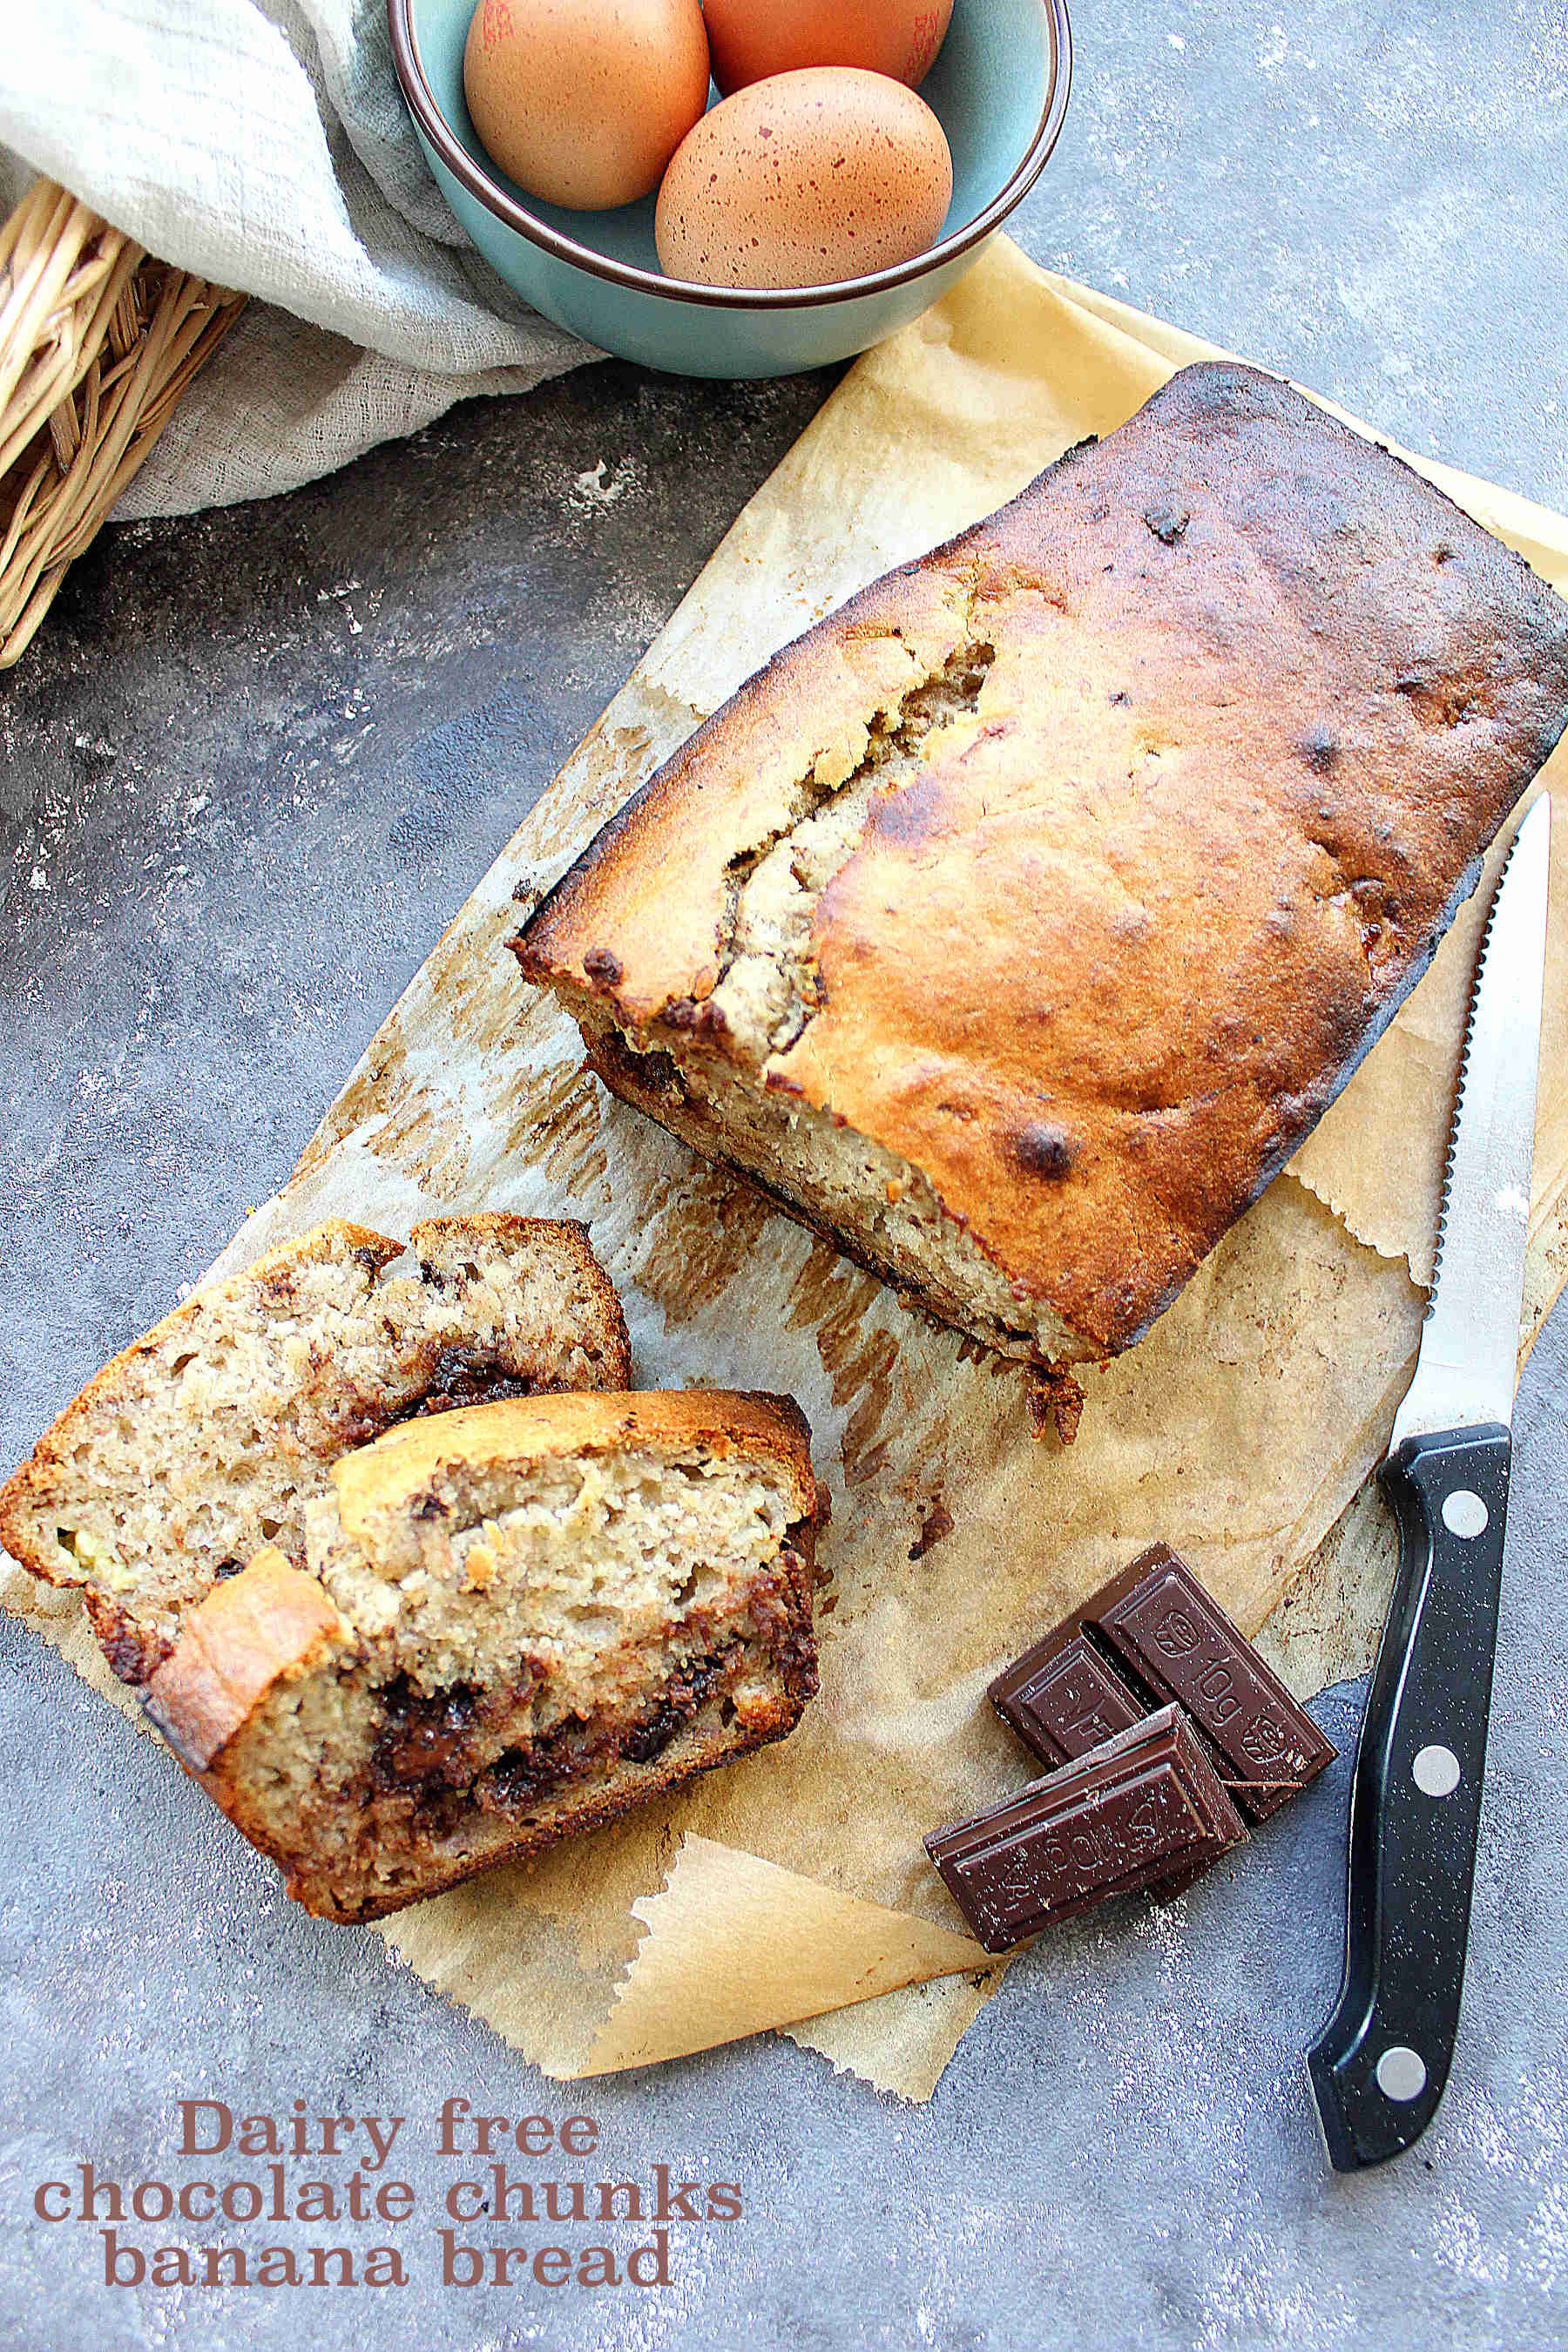 Big chocolate chunks banana bread (dairy free)